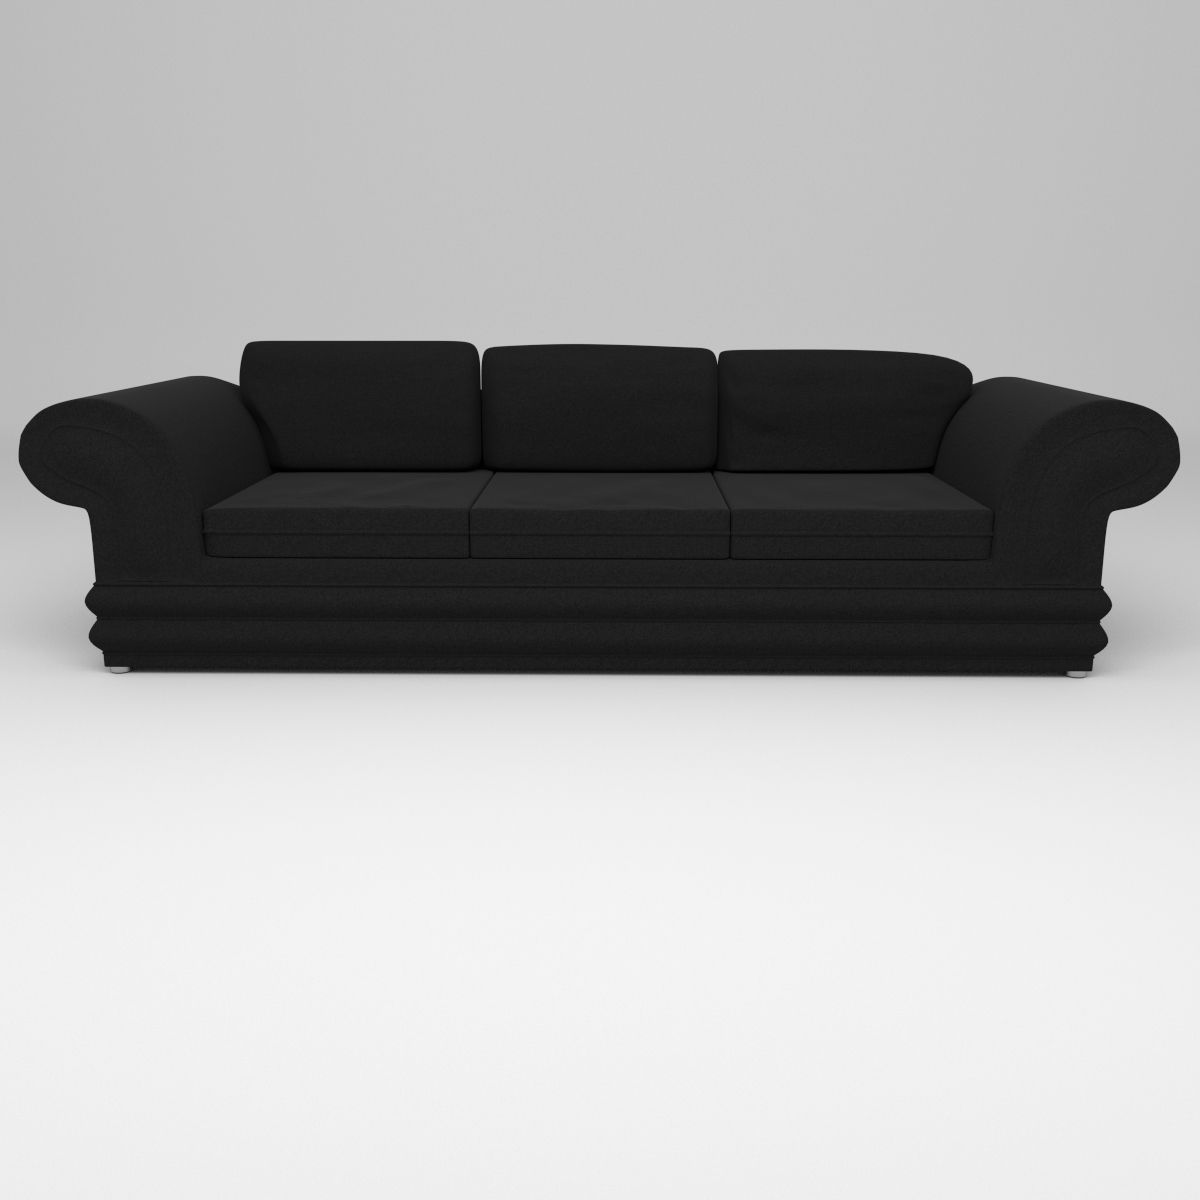 Suede couch 3d model obj 3ds fbx blend for Suede couch